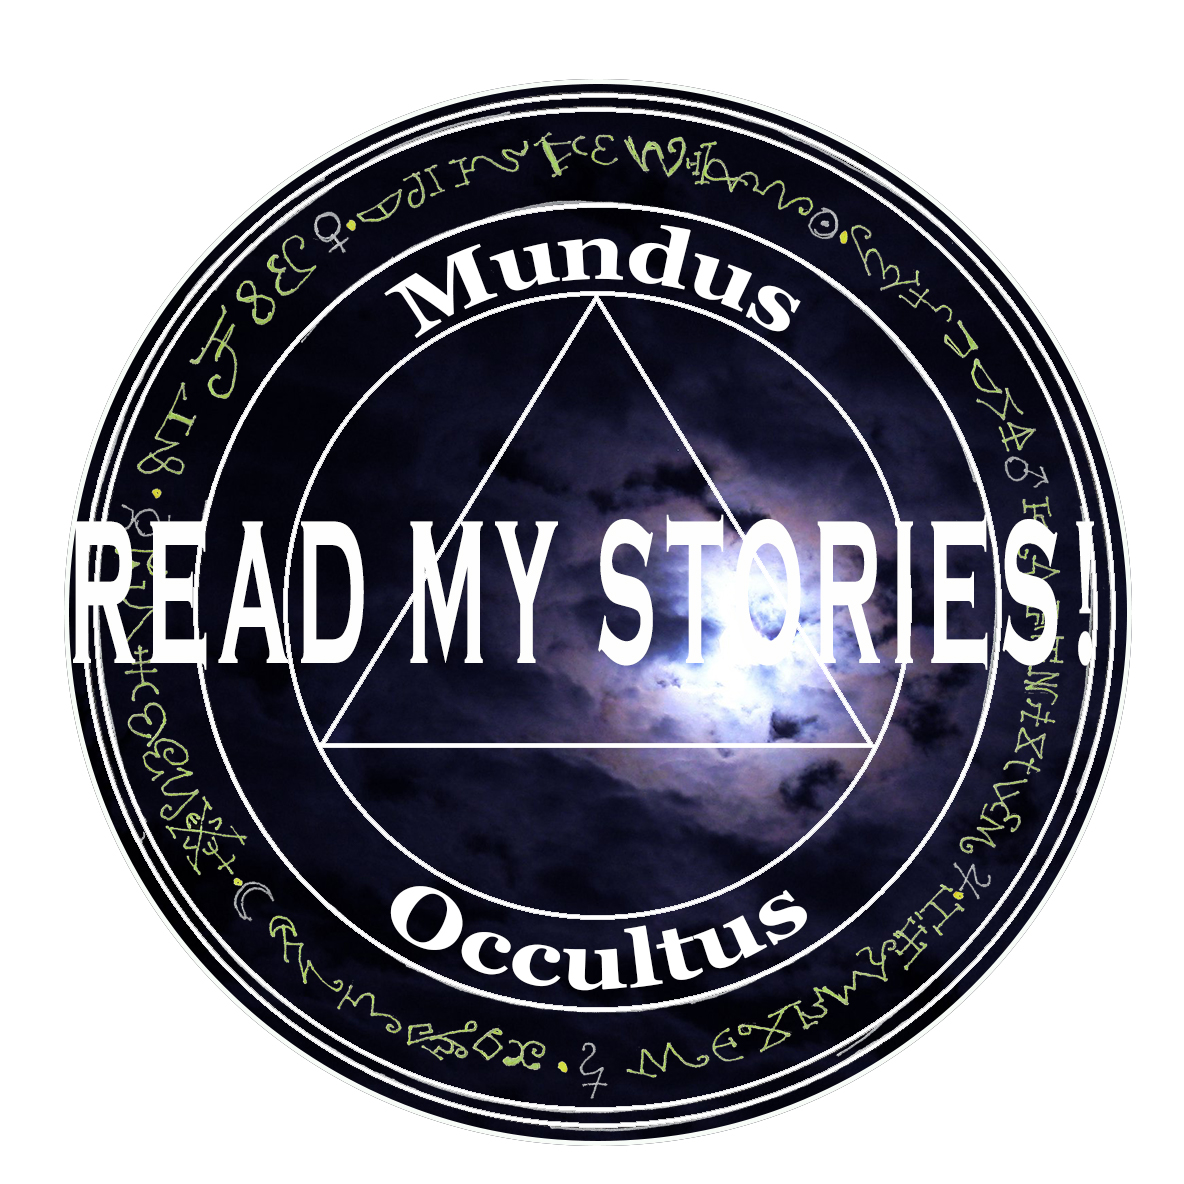 Read my stories!